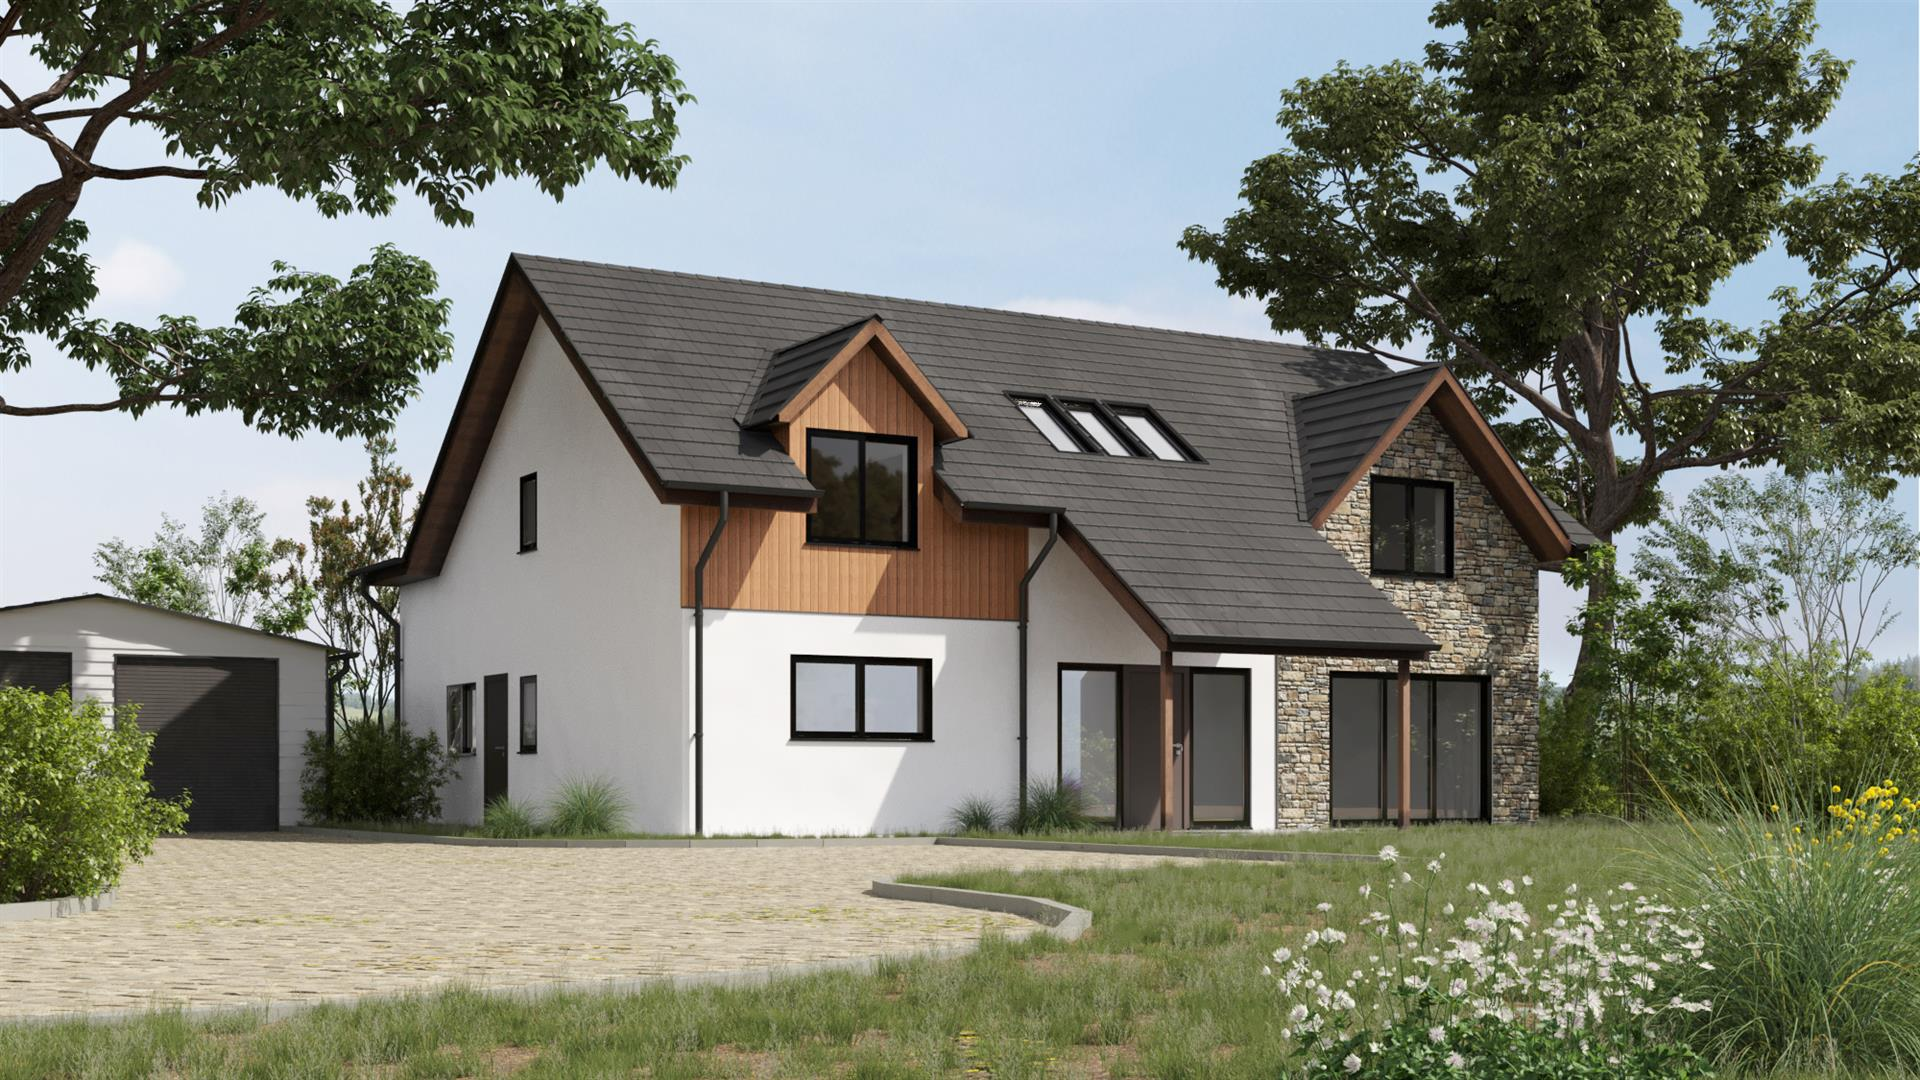 Plot 2, Laigh Brownmuir, Station Road, Glassford, Strathaven